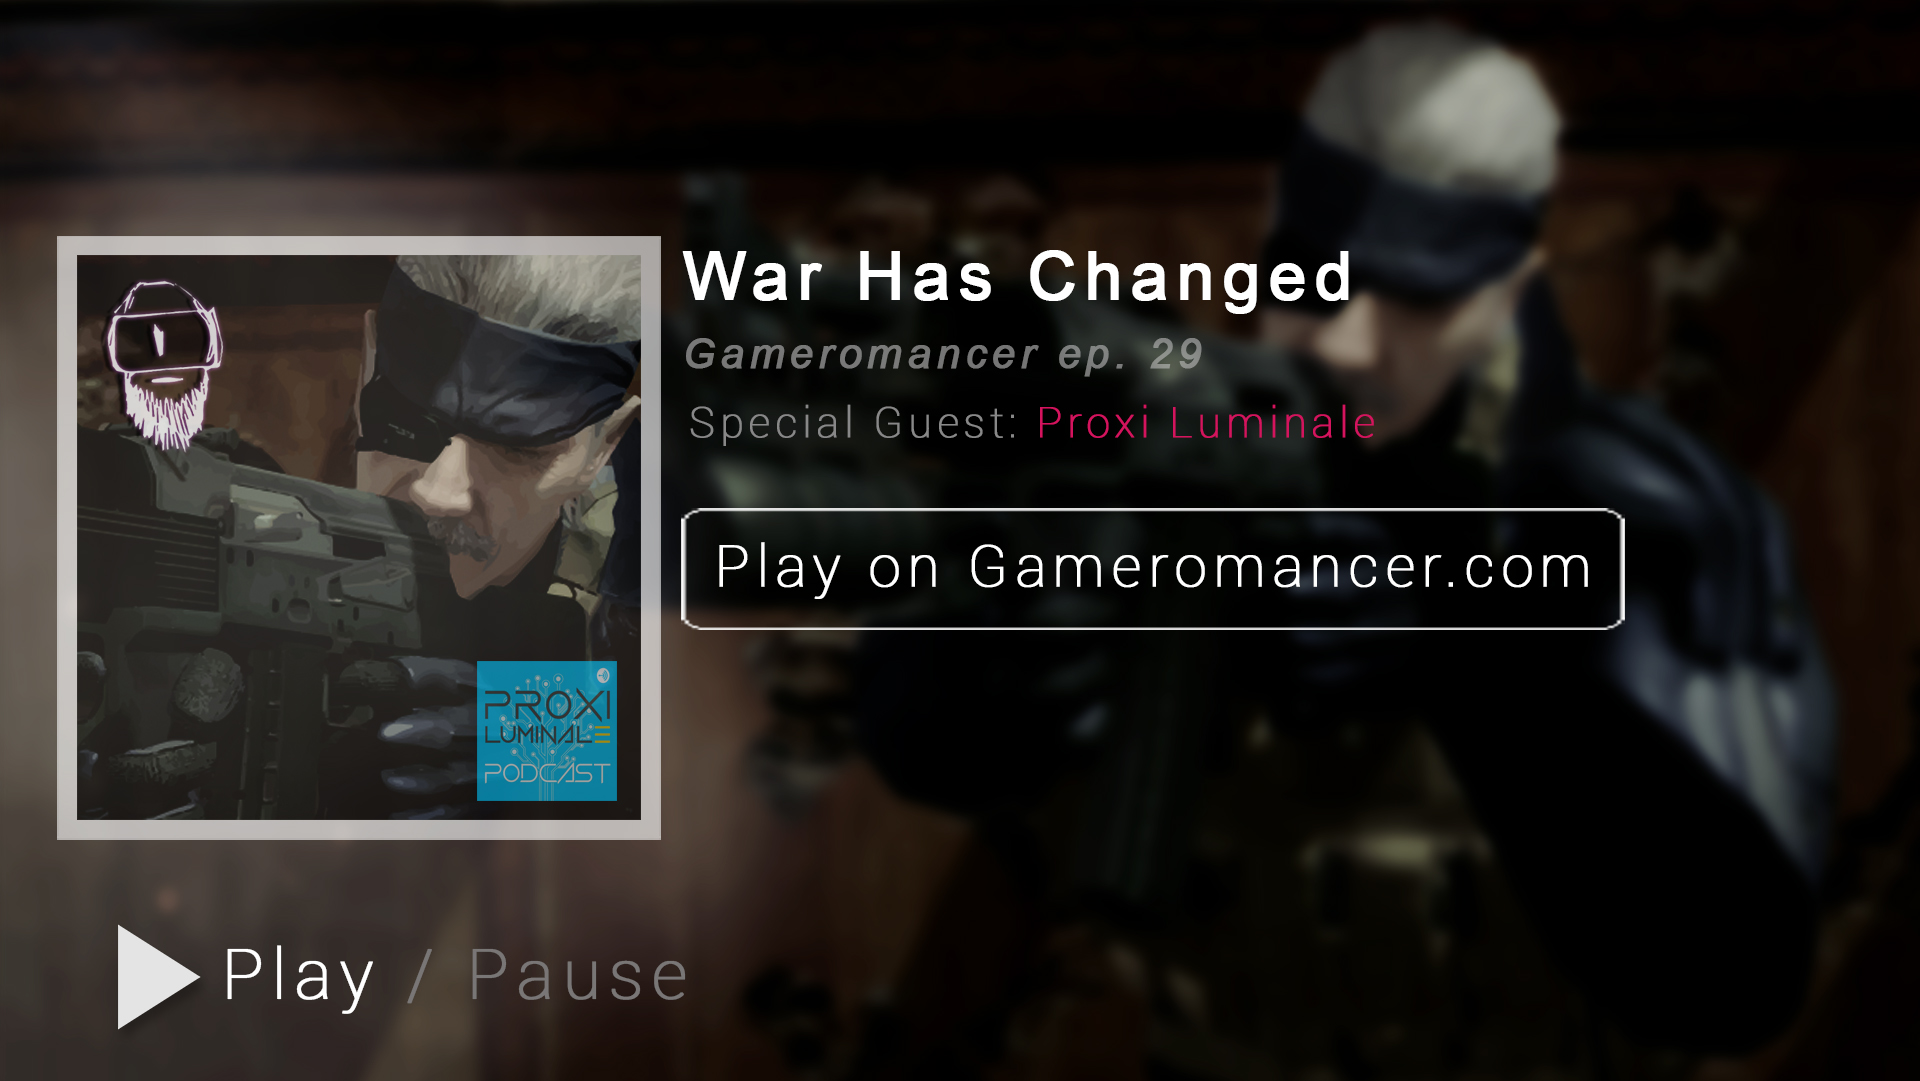 Ep. 29: War has Changed (feat Proxi Luminale)